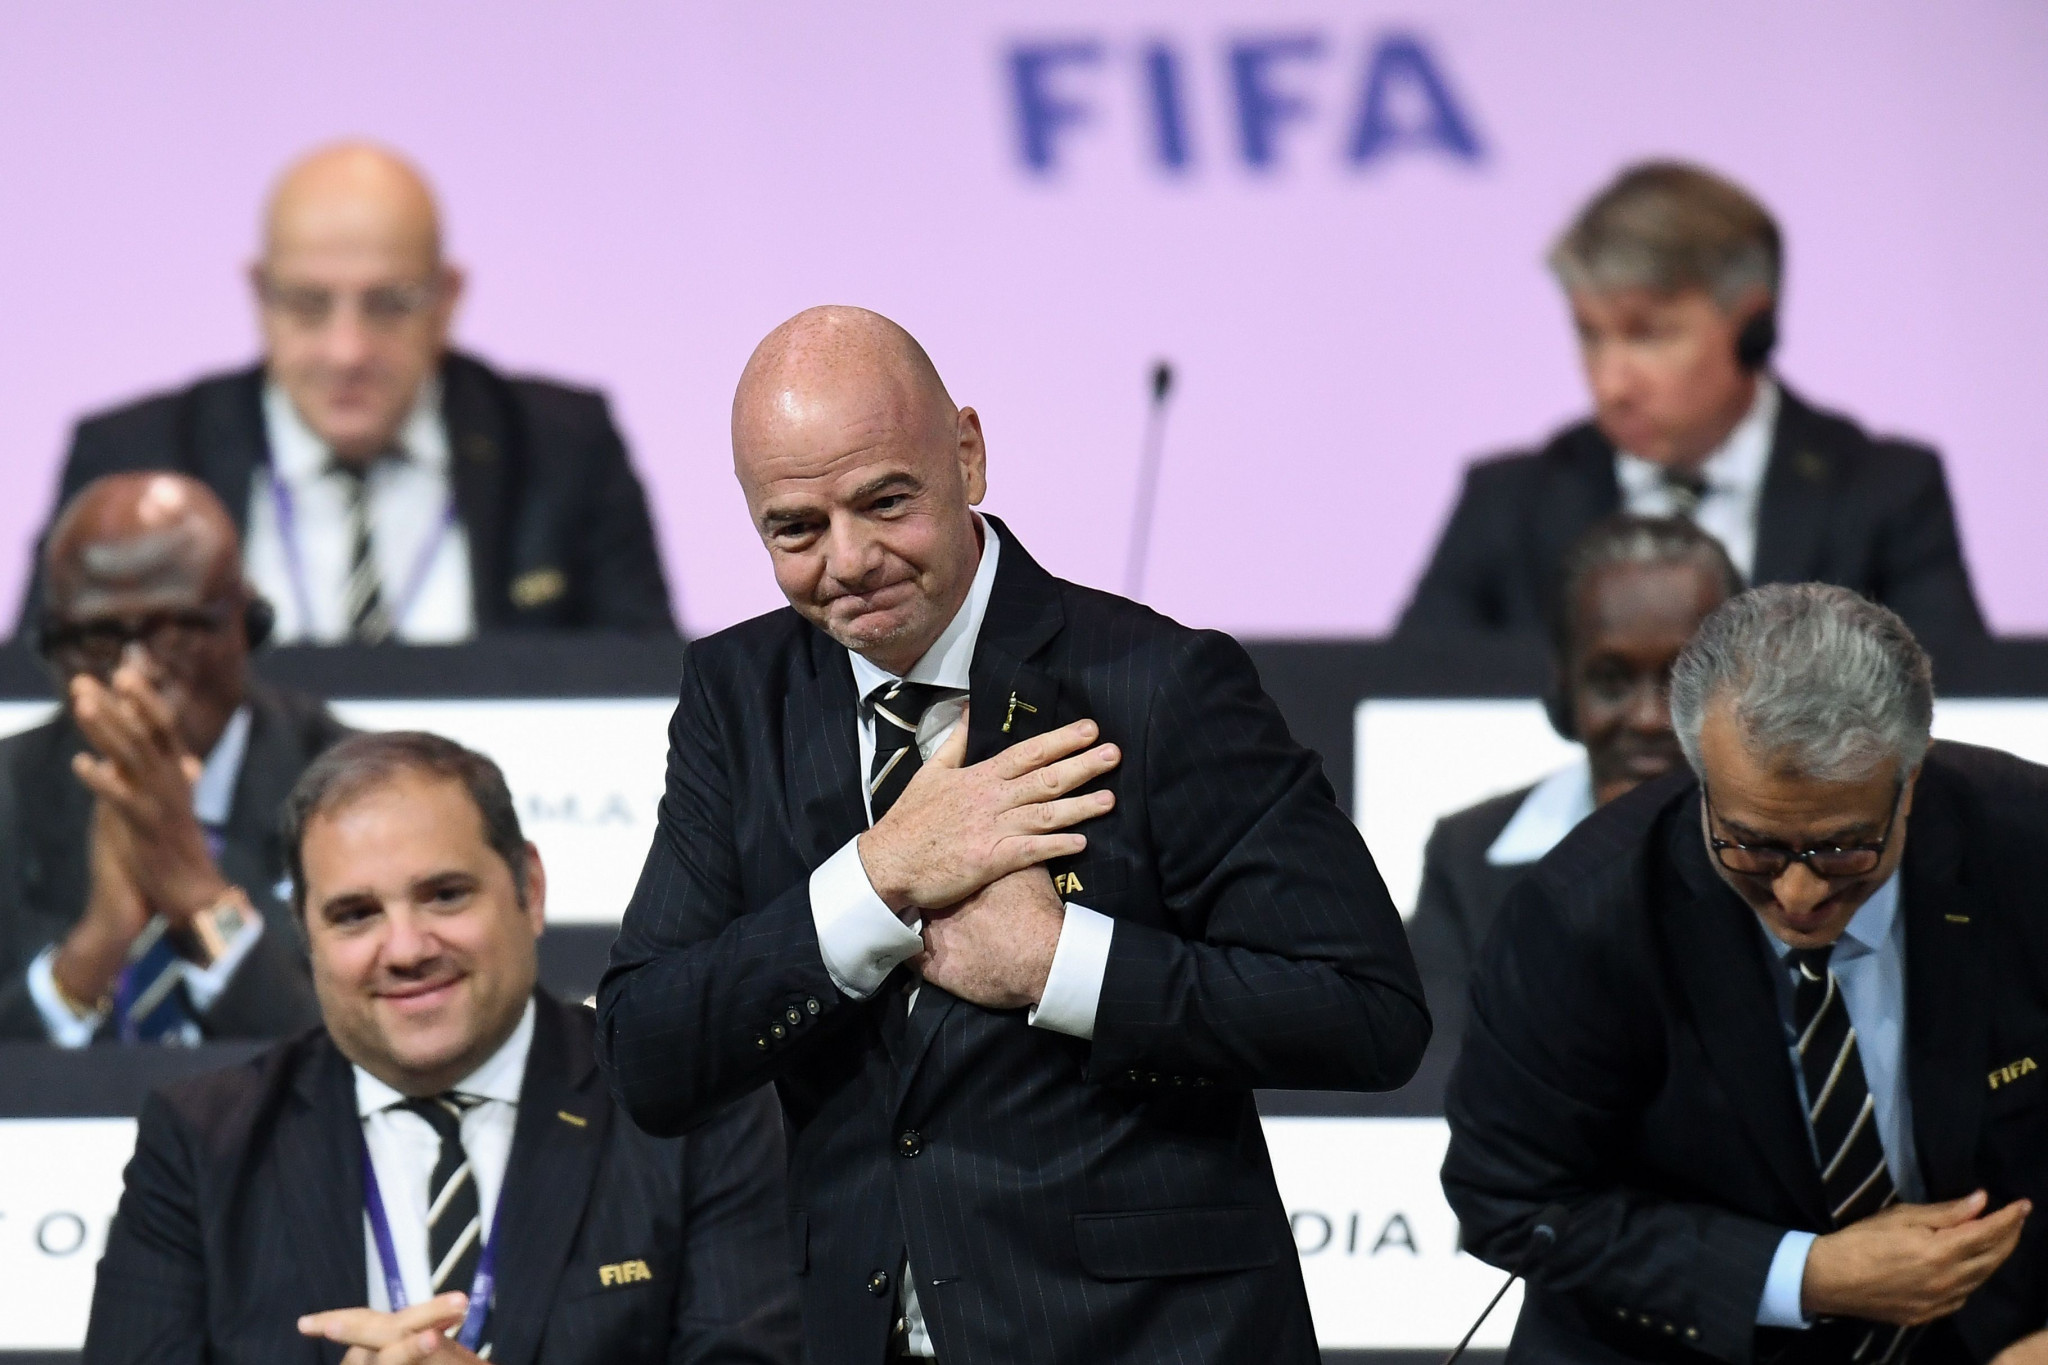 Corinne Blatter Andenmatten has hit out at FIFA President Gianni Infantino ©Getty Images